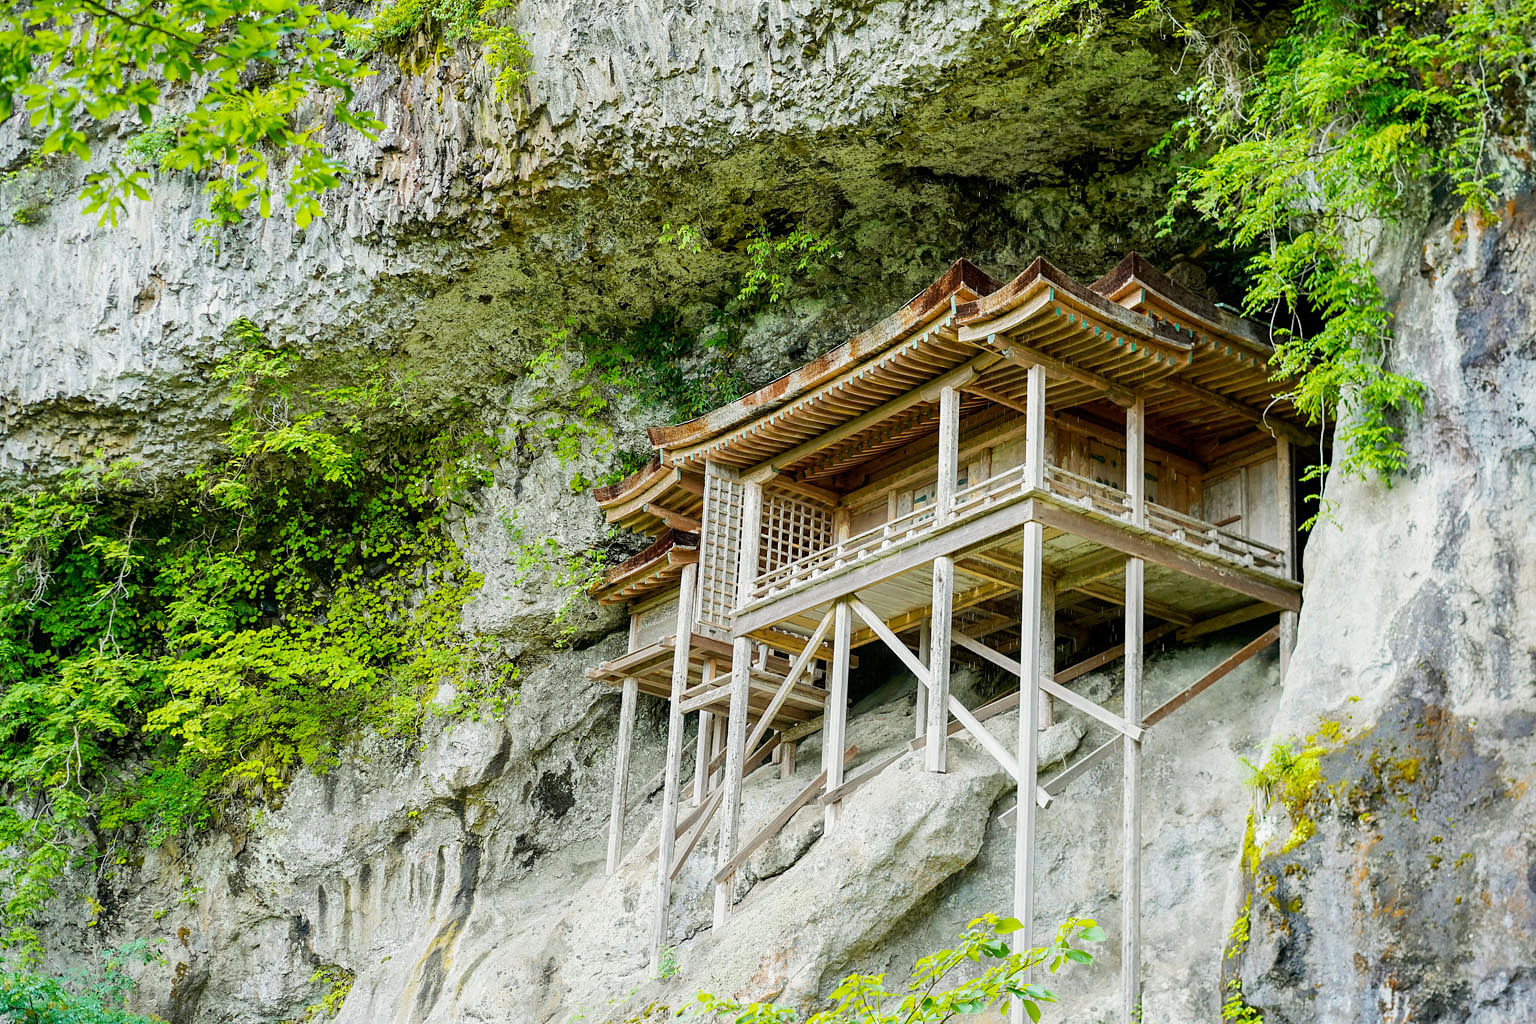 It is a long and steep climb to get to Mitokusan Sanbutsuji Temple, designated a national architectural treasure, as it